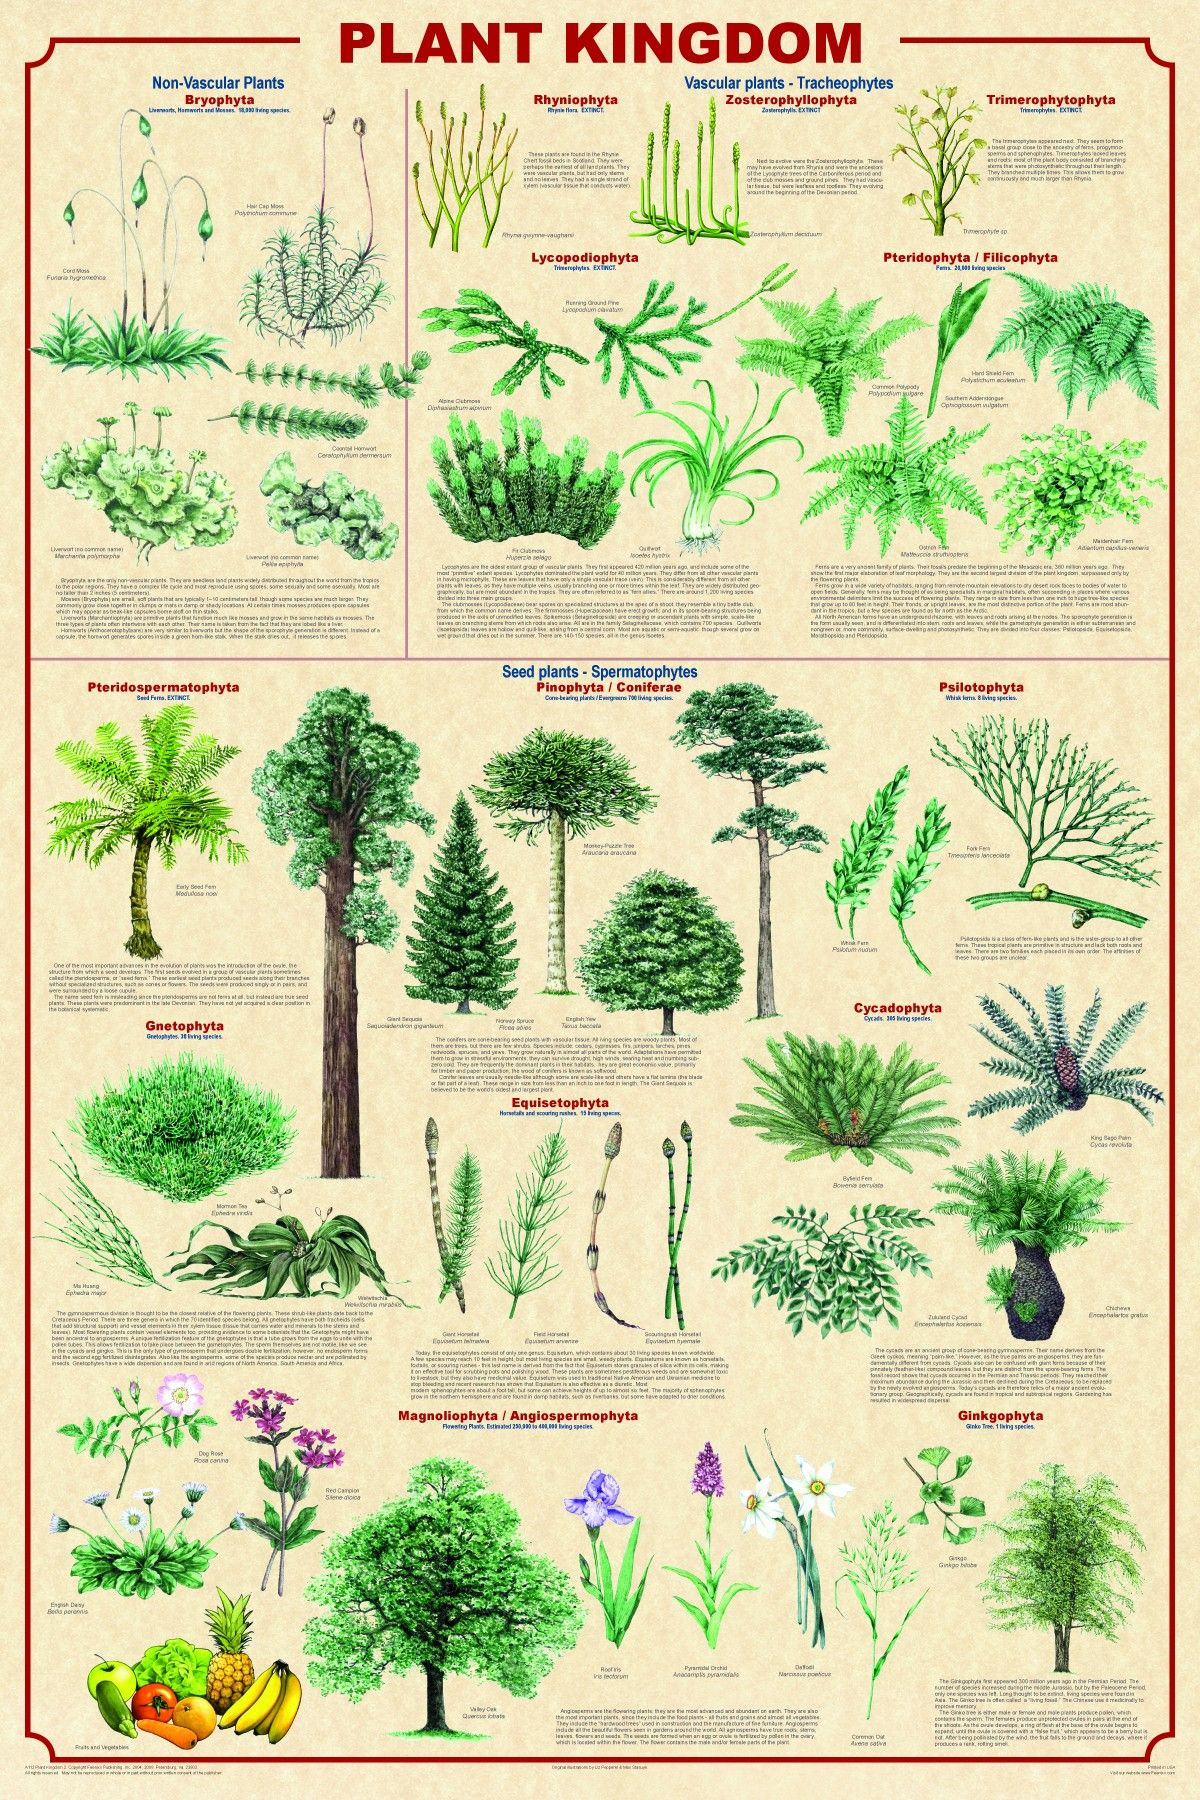 An Infographic Defining The Plant Kingdom